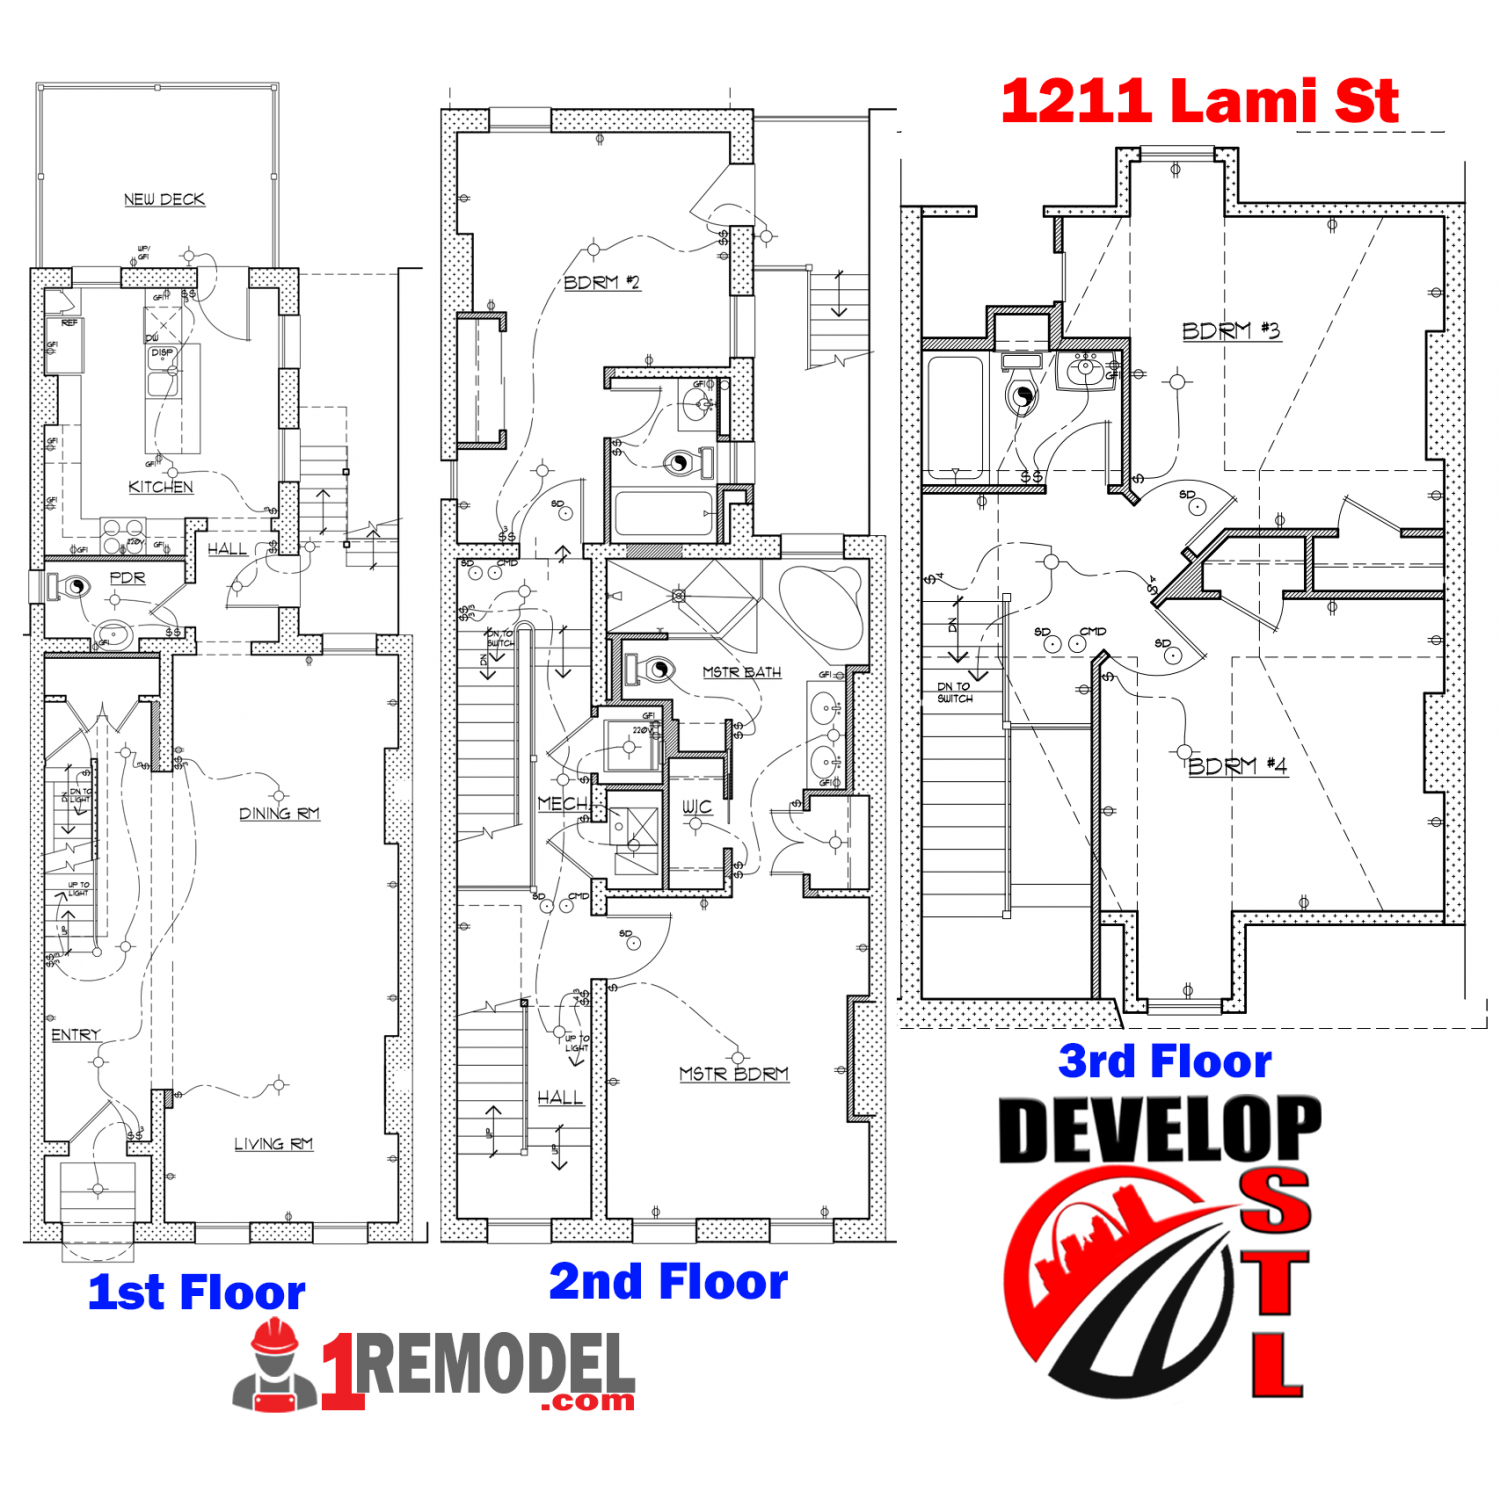 Historic Lami Building Layout